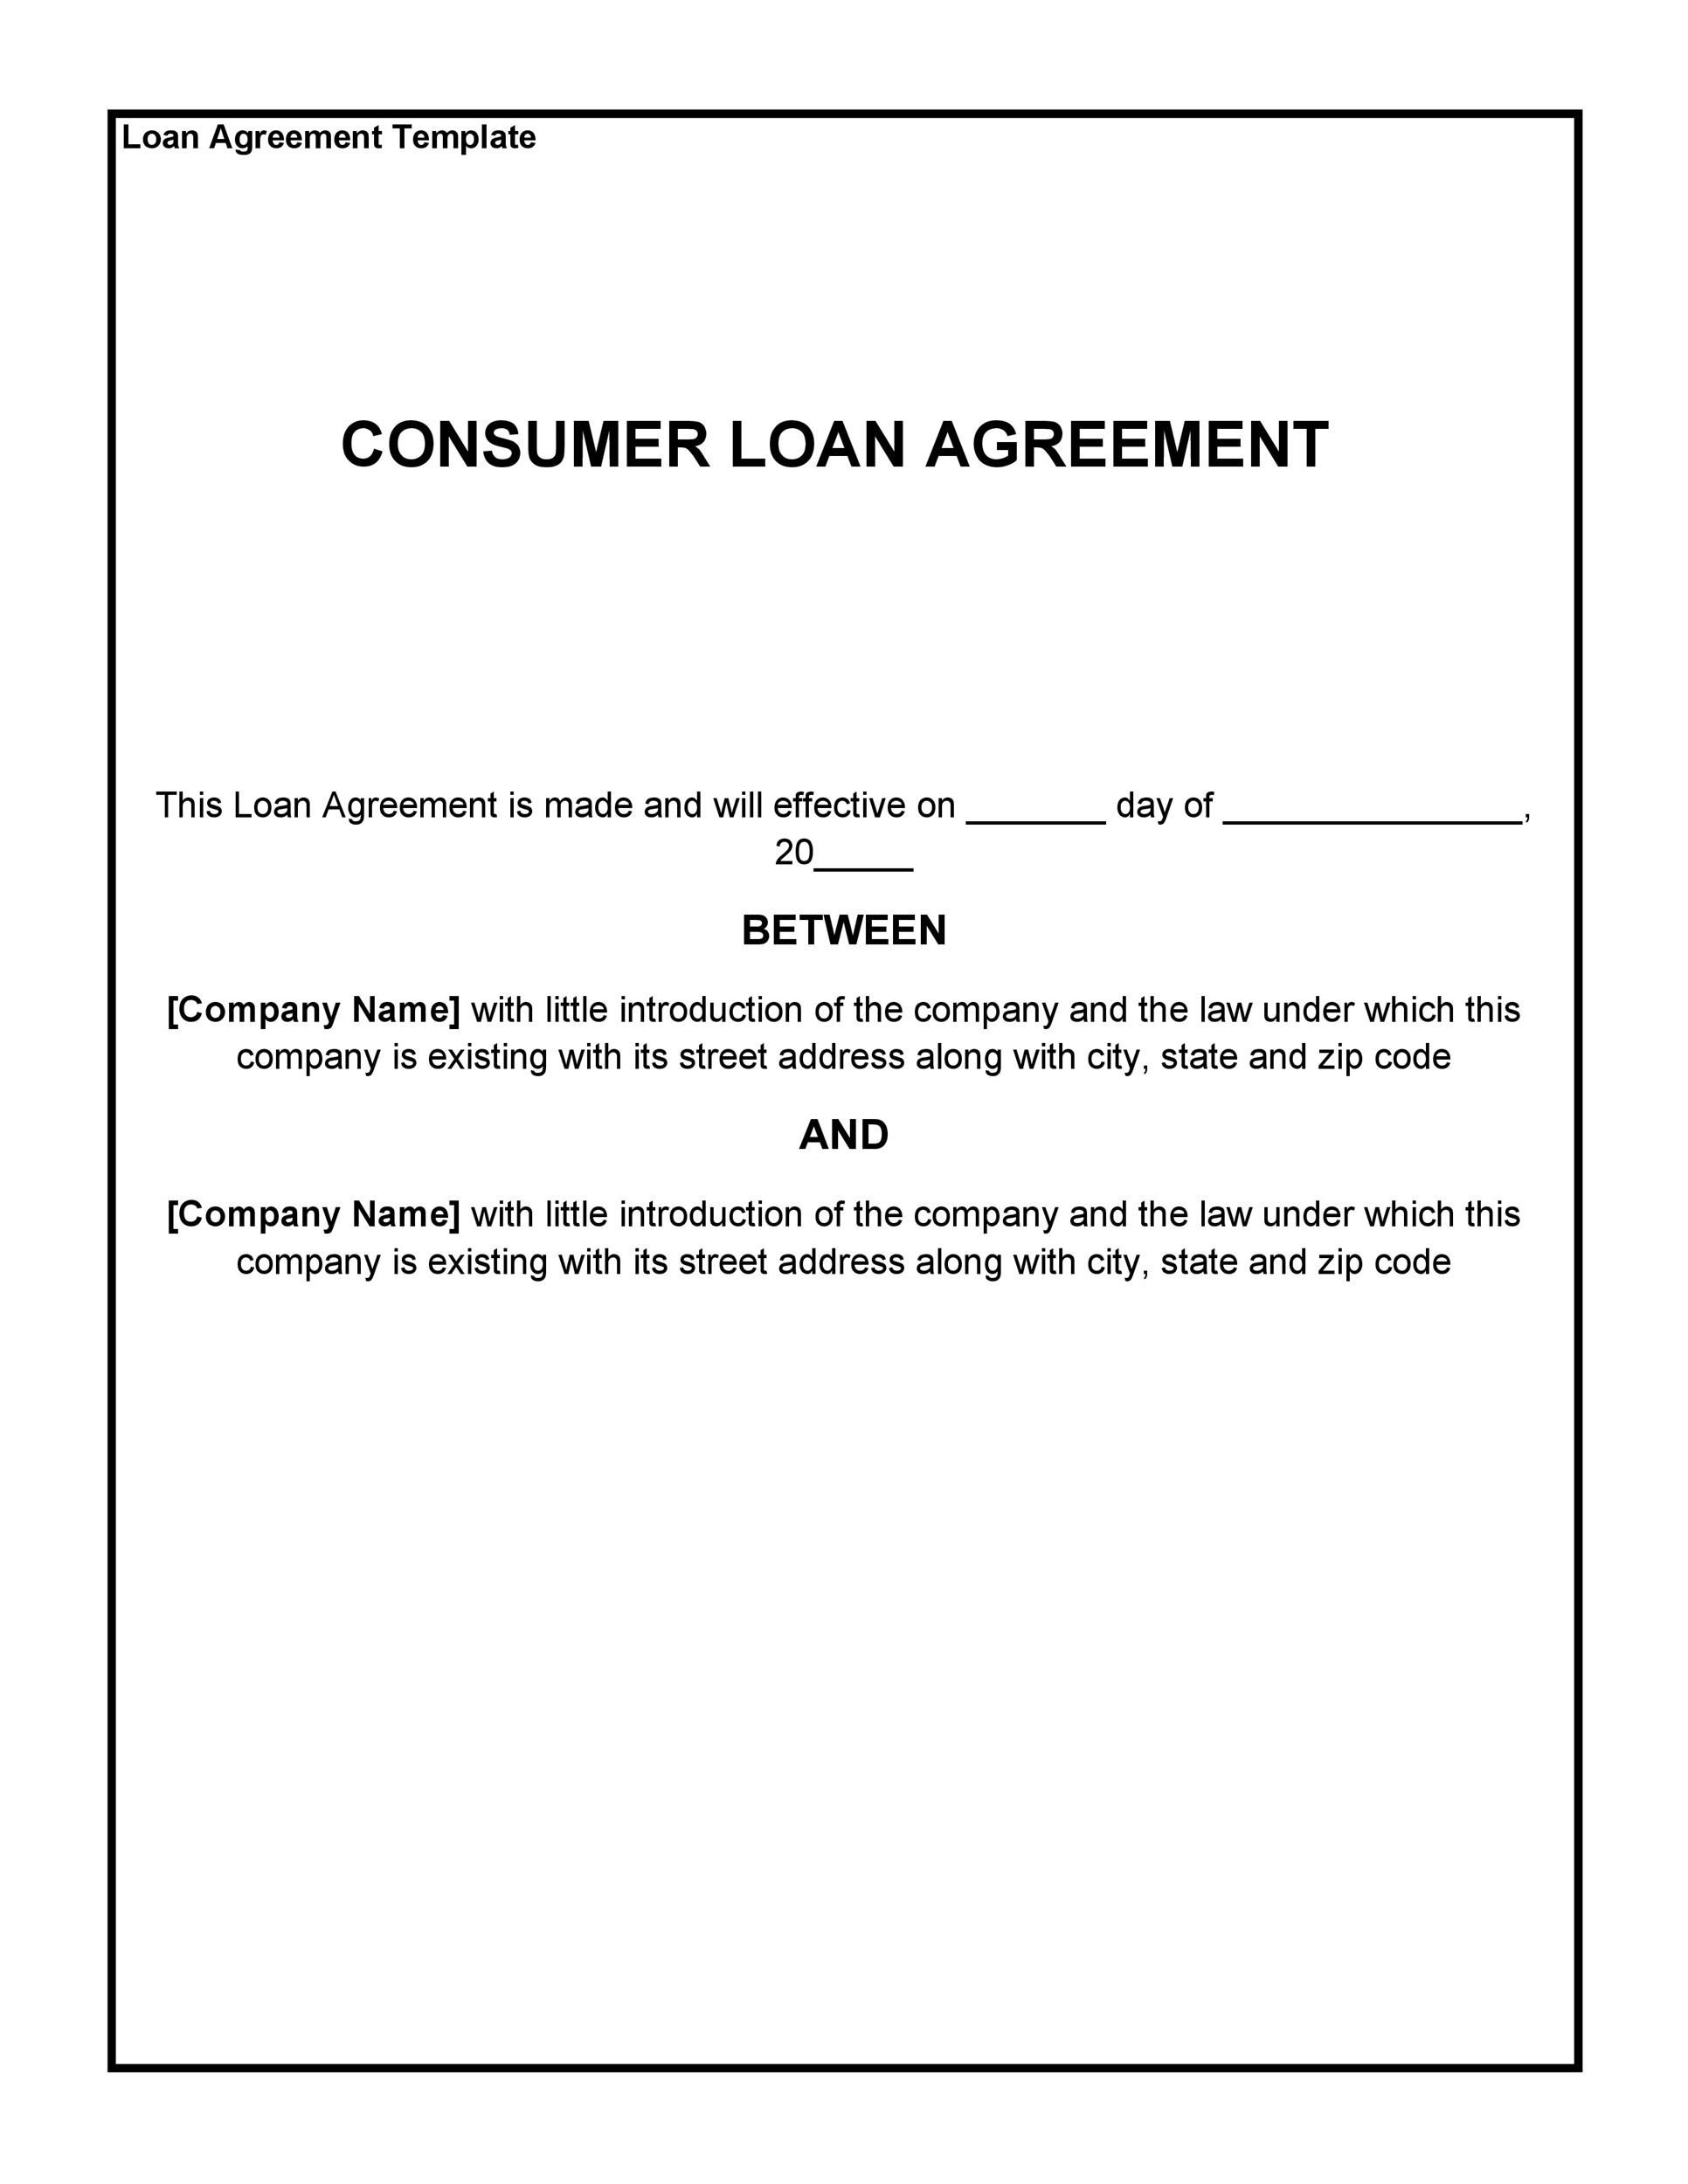 008 Singular Family Loan Agreement Template Highest Clarity  Free Uk Friend And Simple AustraliaFull